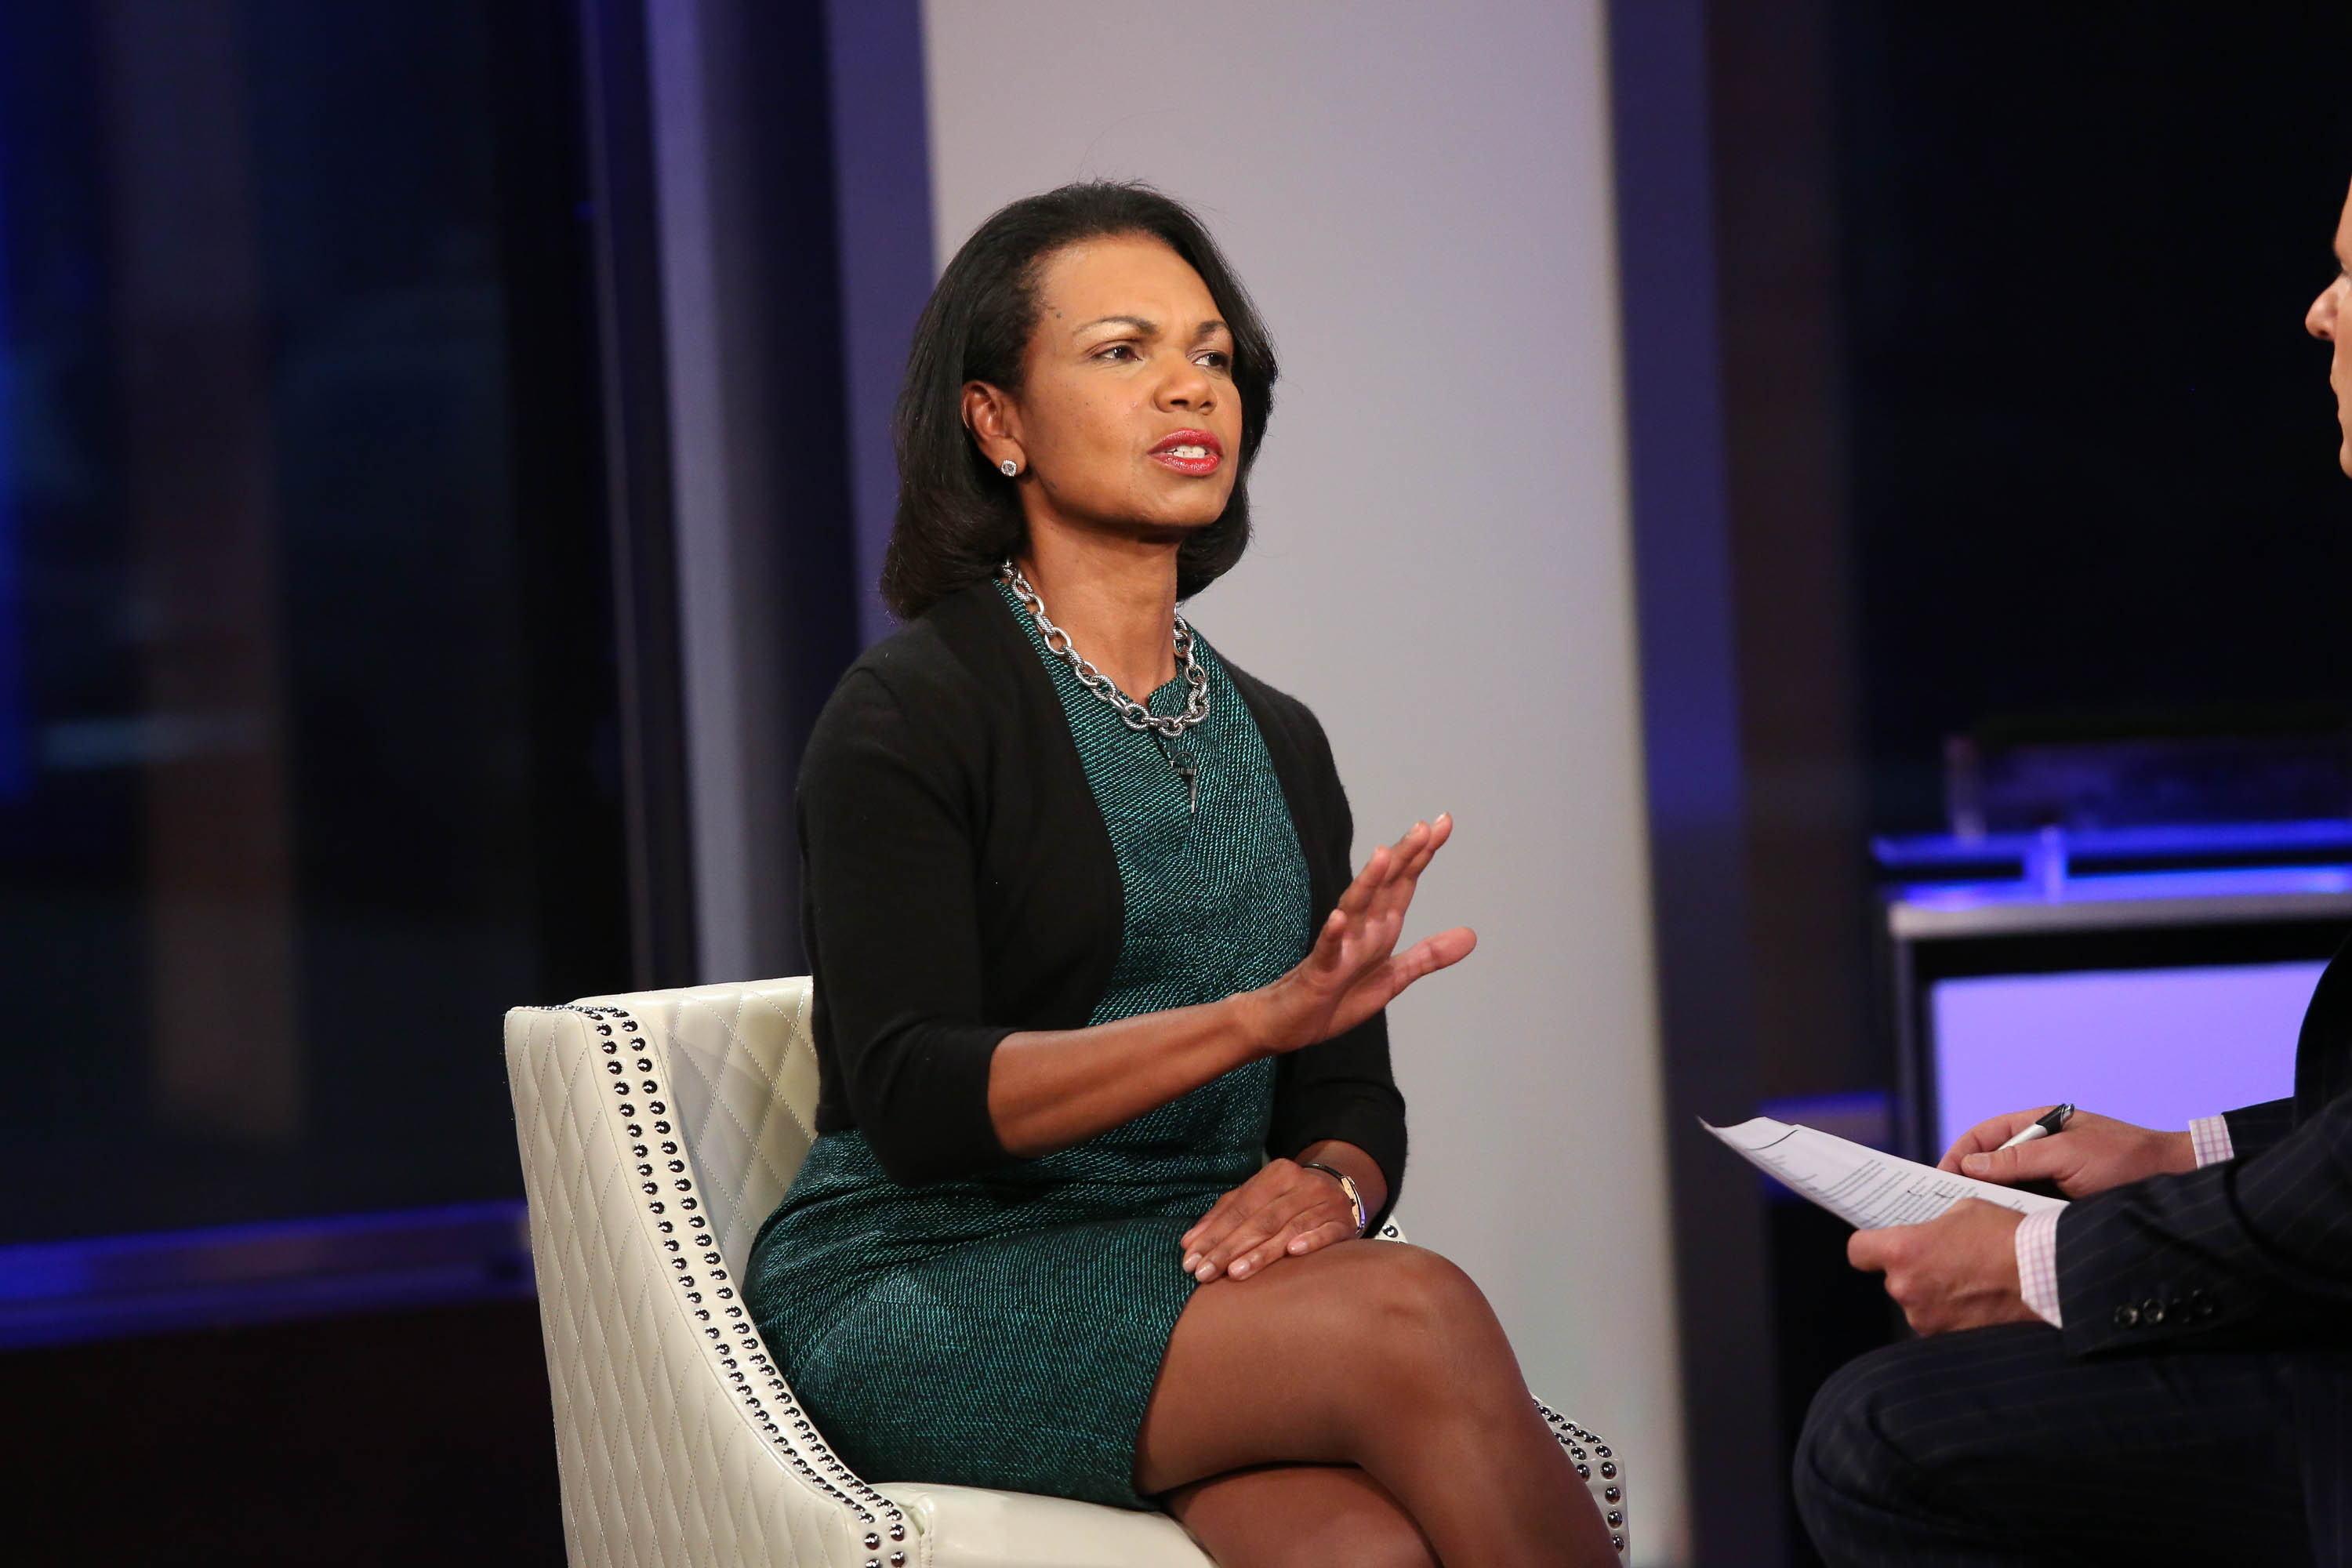 Condoleezza Rice on Nov. 5, 2014 in New York City.  (Photo by Rob Kim/Getty Images)